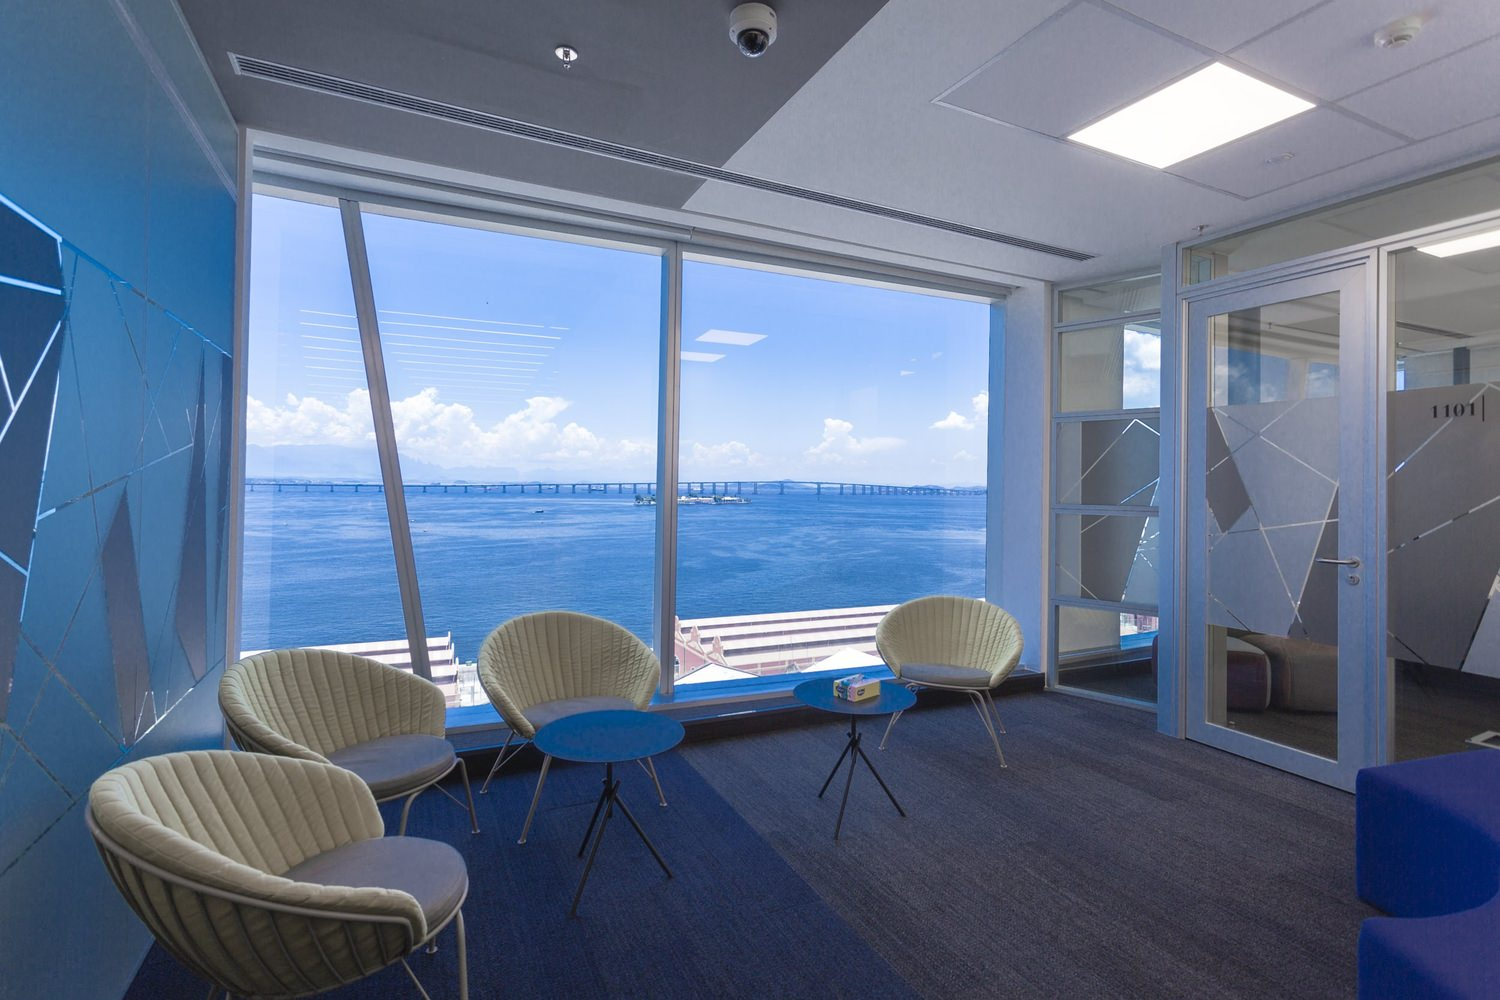 A sitting room that has a large glass window that looks out at the ocean from there and there are four chairs in it.